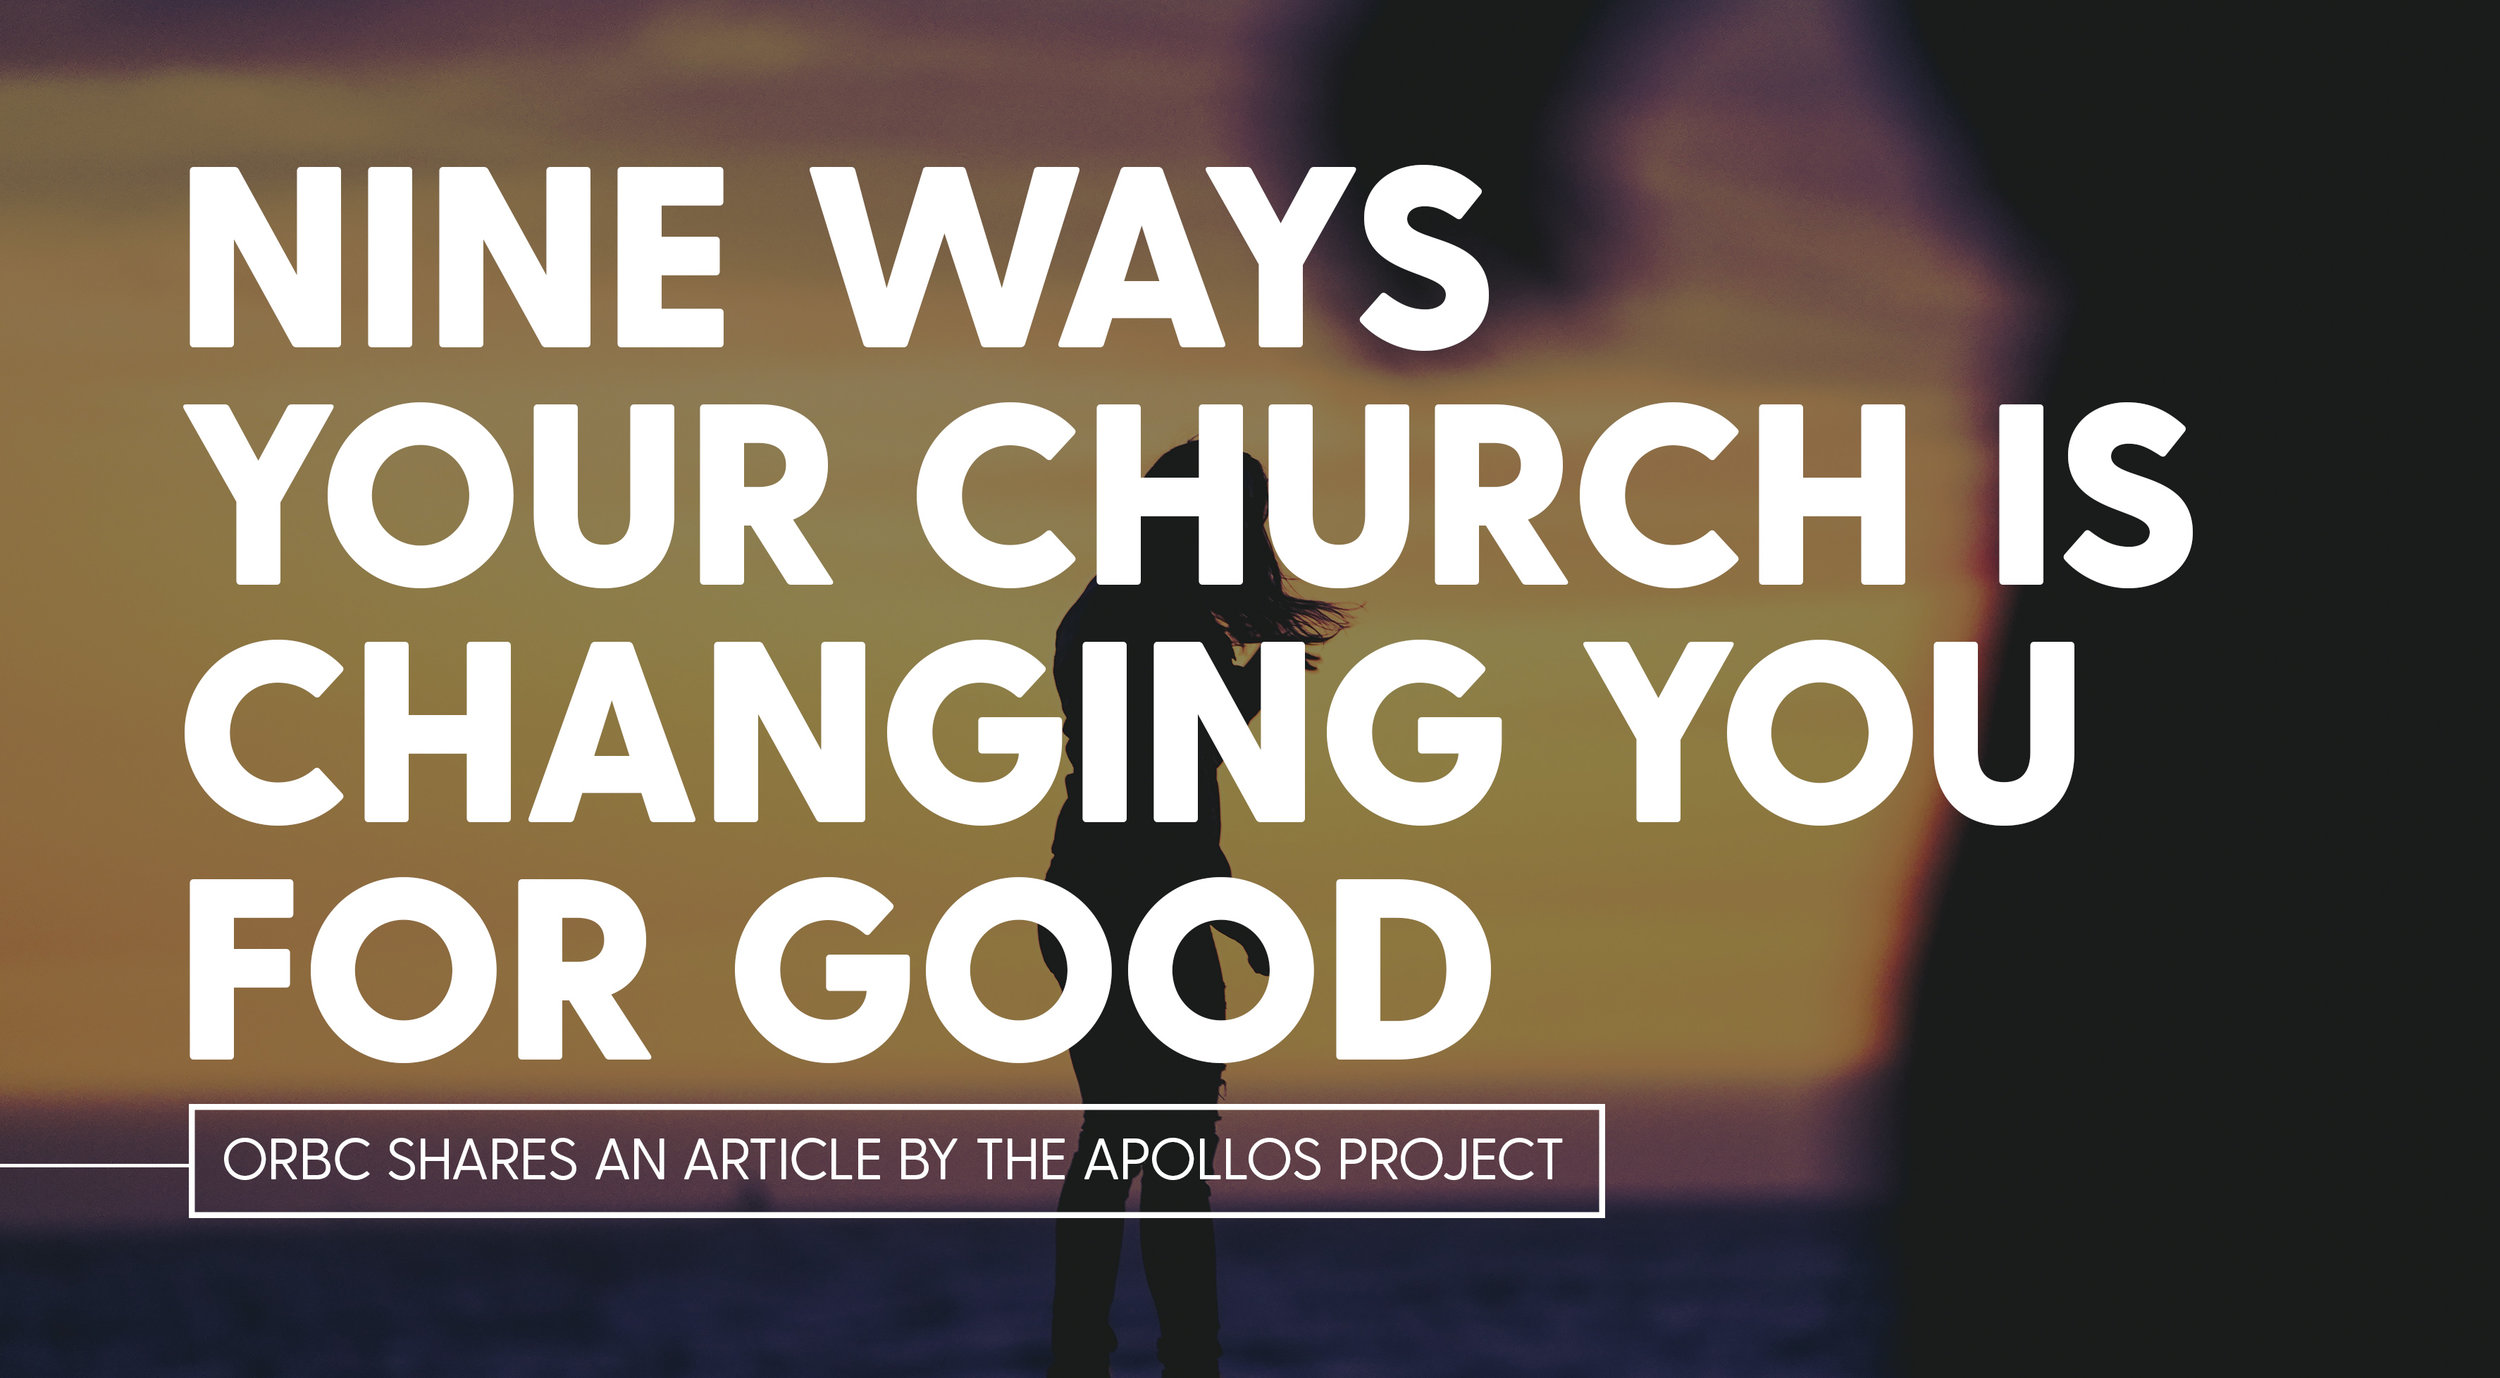 Nine Ways Your Church is Changing You for Good.jpg